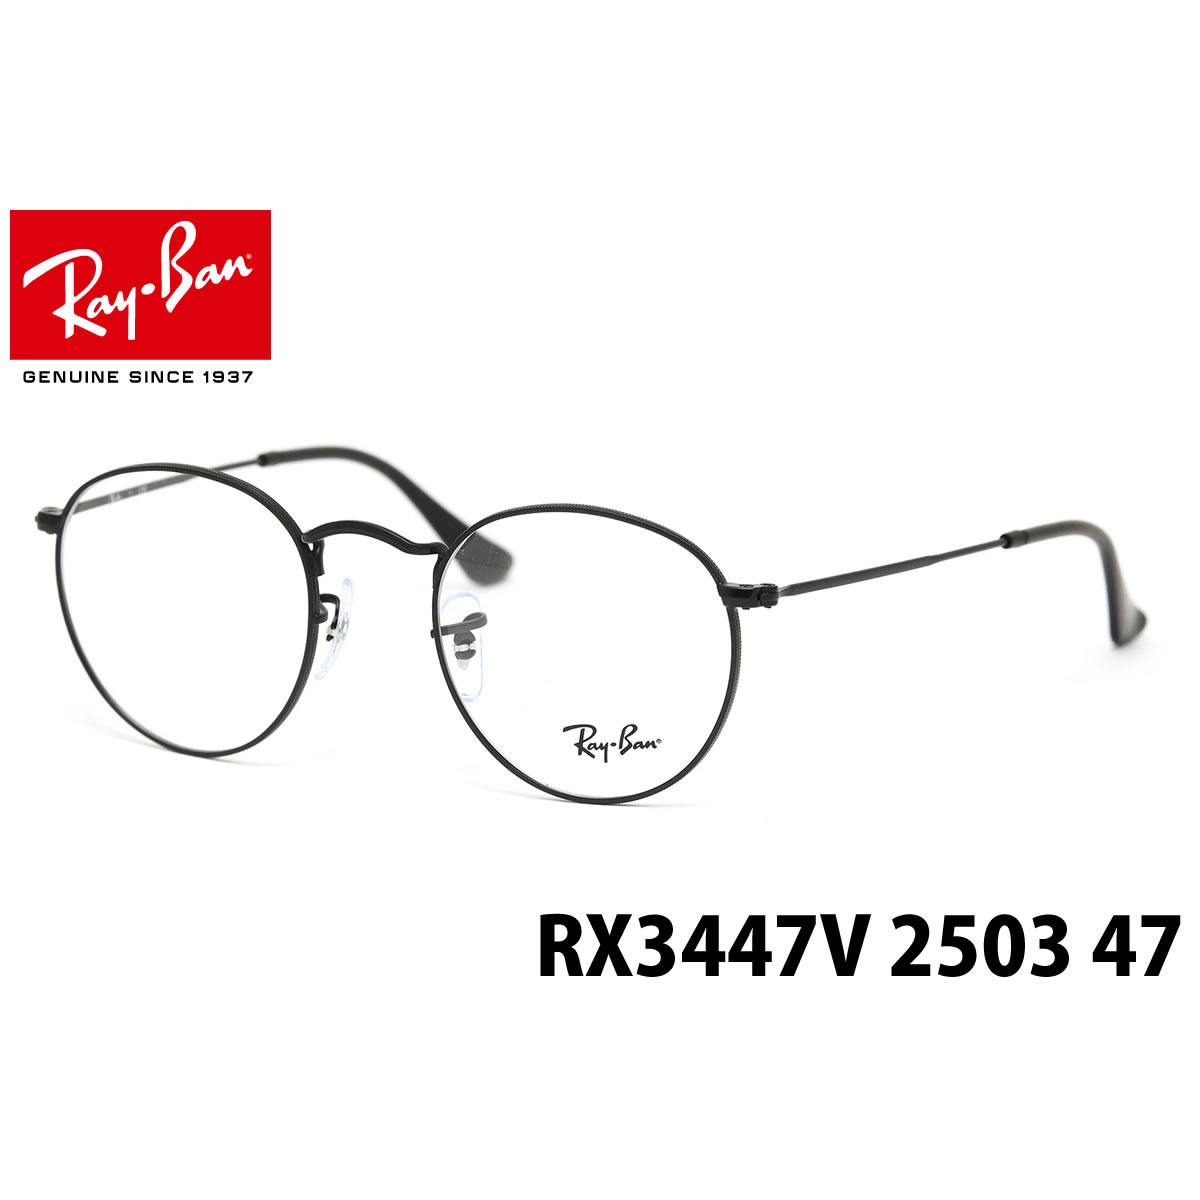 0cb9a47d827 ... free shipping ray ban round metal eyeglasses frame rx3447v6503 47 size round  round glasses round ray